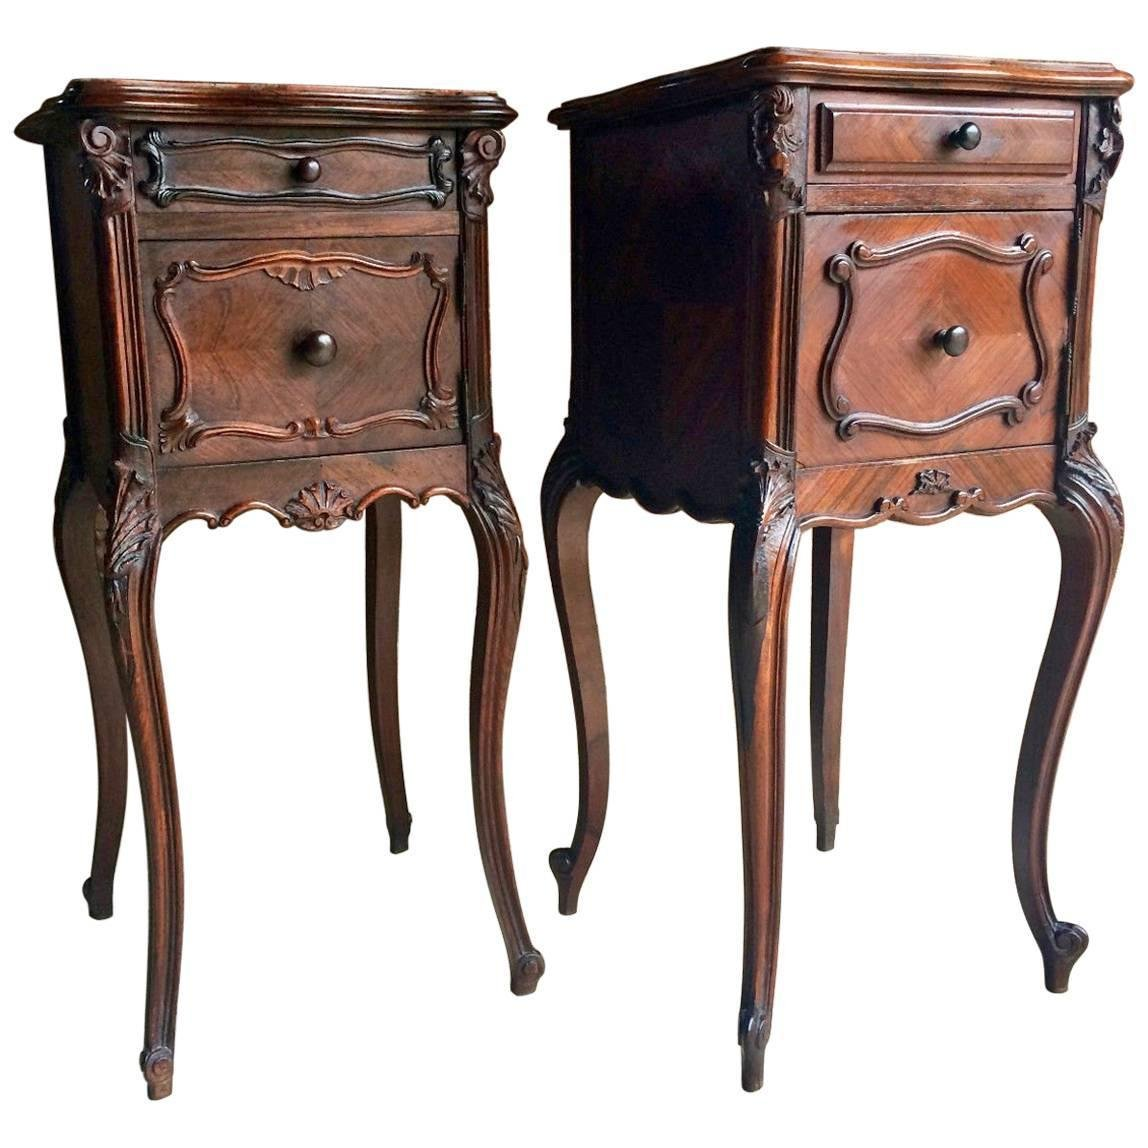 Antique French Walnut Amp Marble Night Stands Set Of 2 For